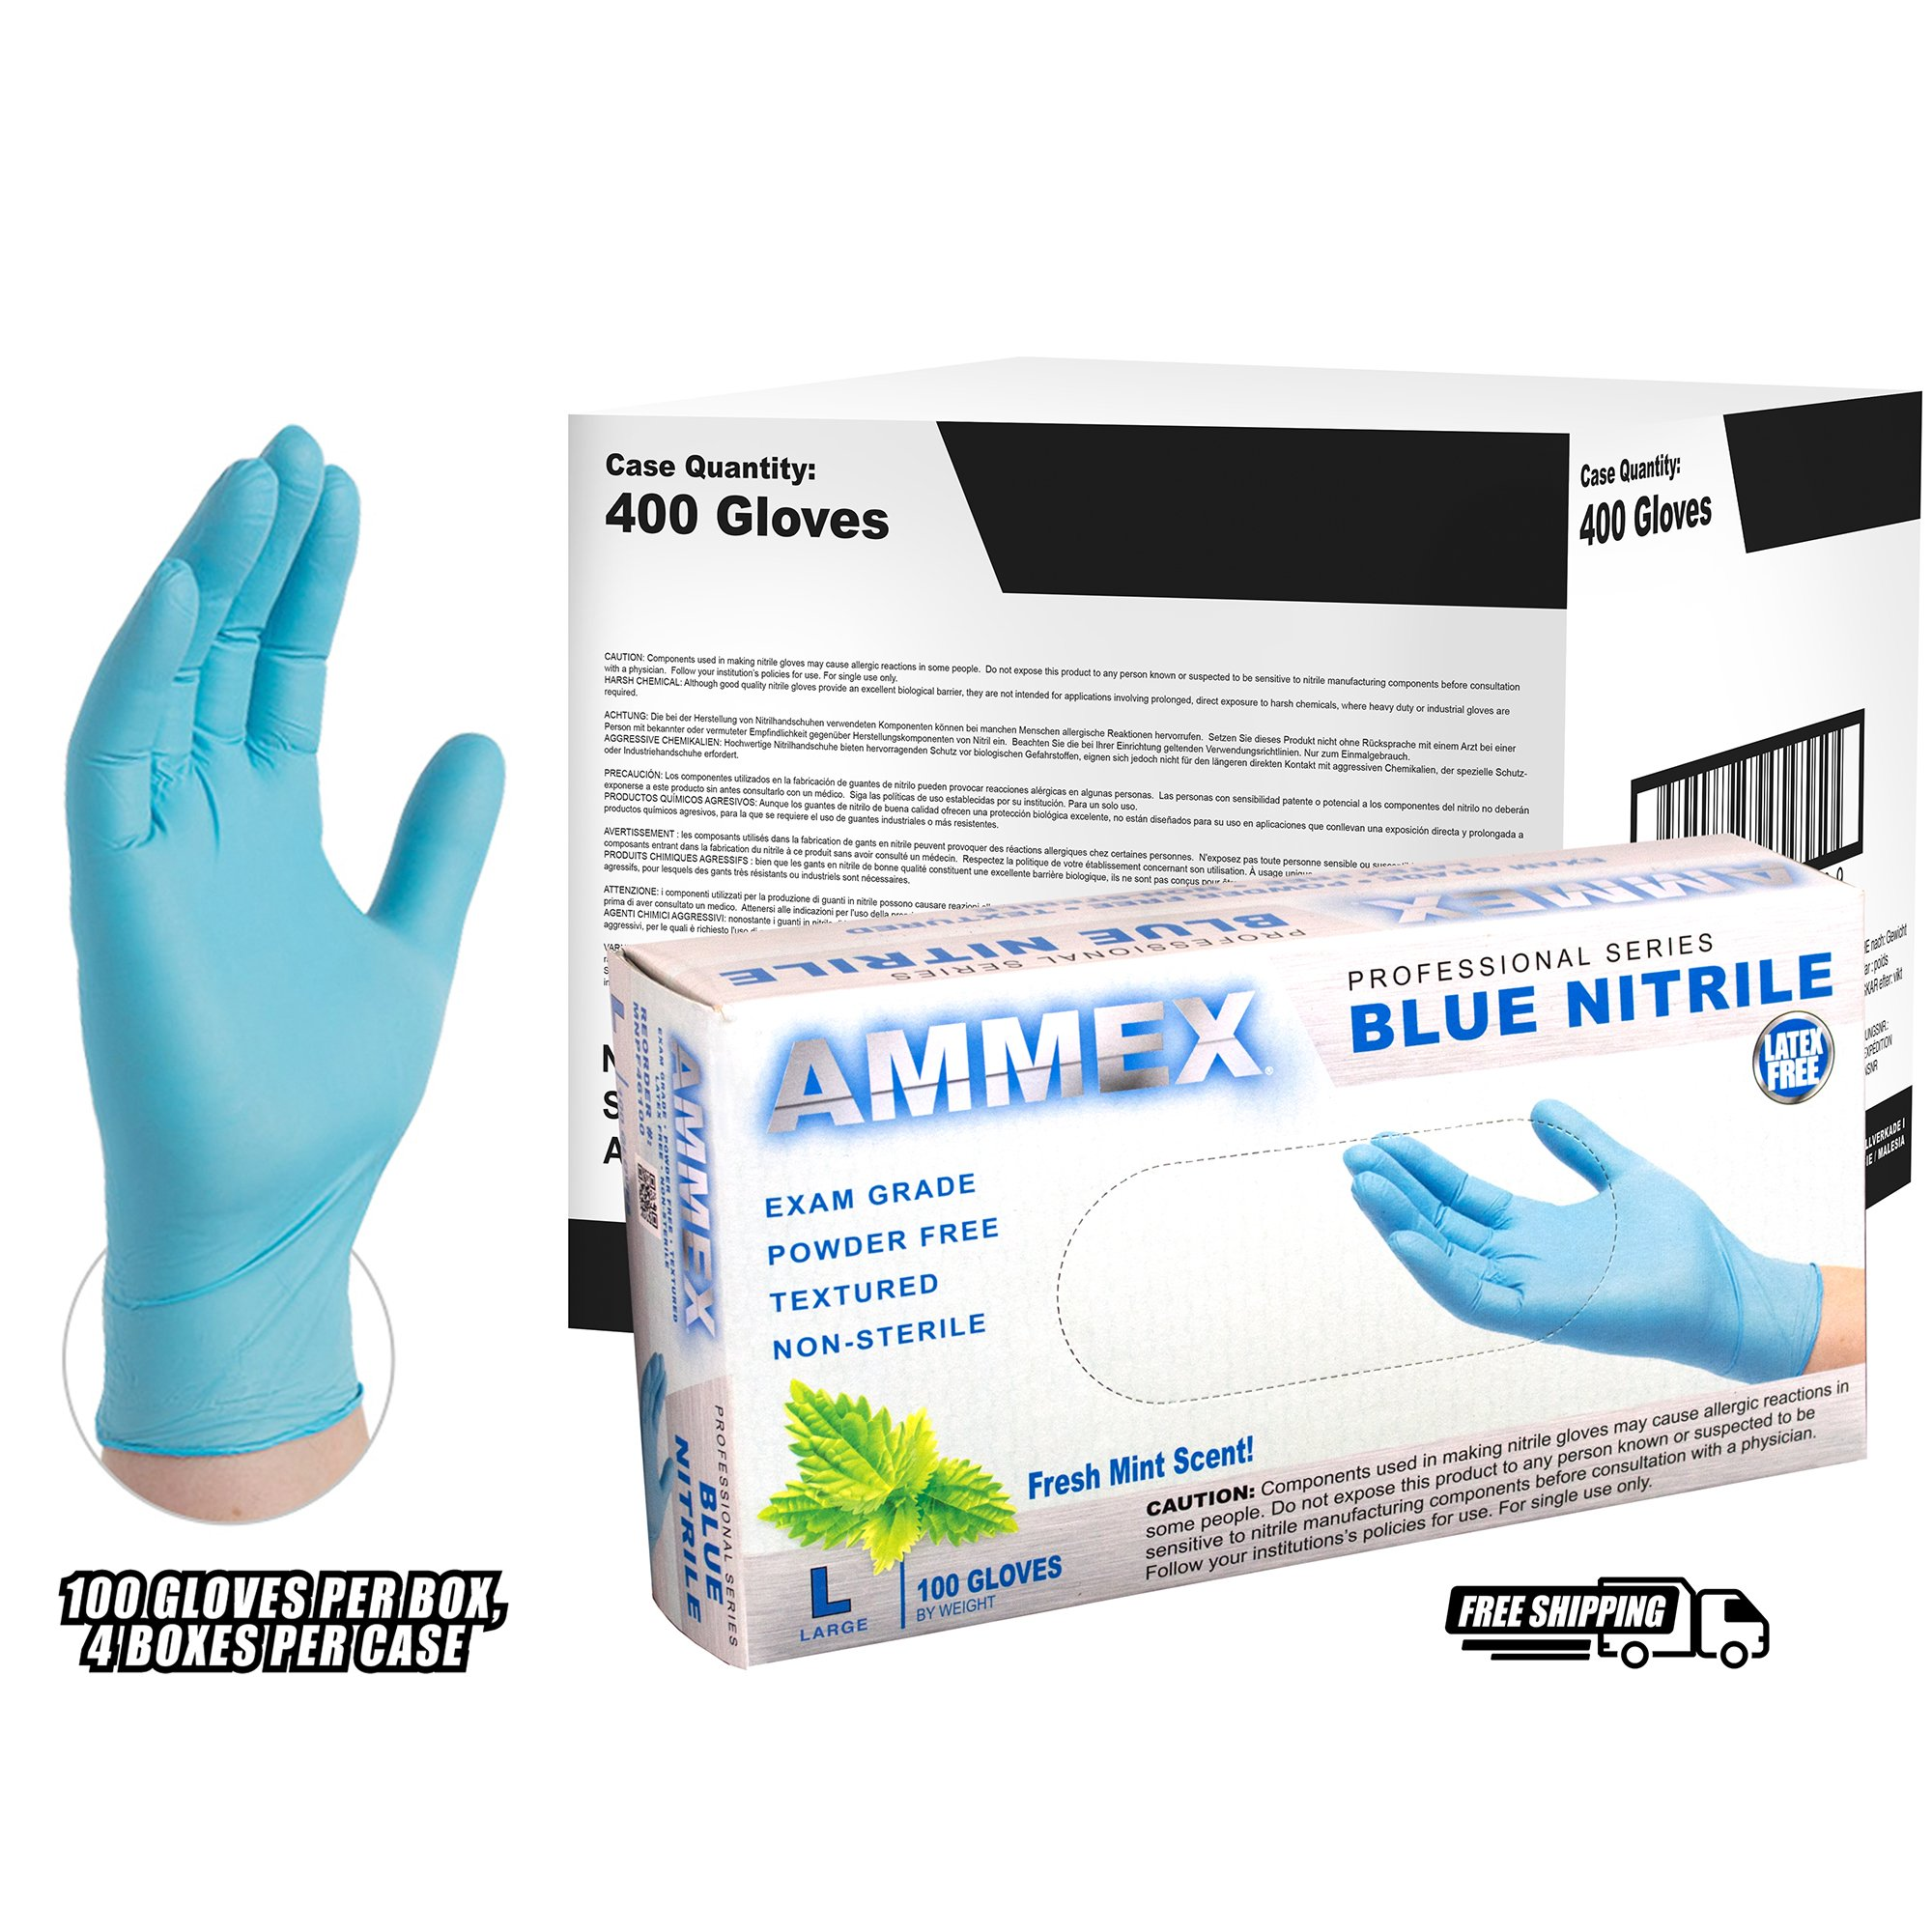 AMMEX - MNPF46100 - Nitrile Gloves - Medical Grade, Powder Free, Latex Rubber Free, Disposable, Non Sterile, 4 Mil, Mint Scented, Exam Gloves, Food Safe, Textured, Blue, Large(Case of 400)